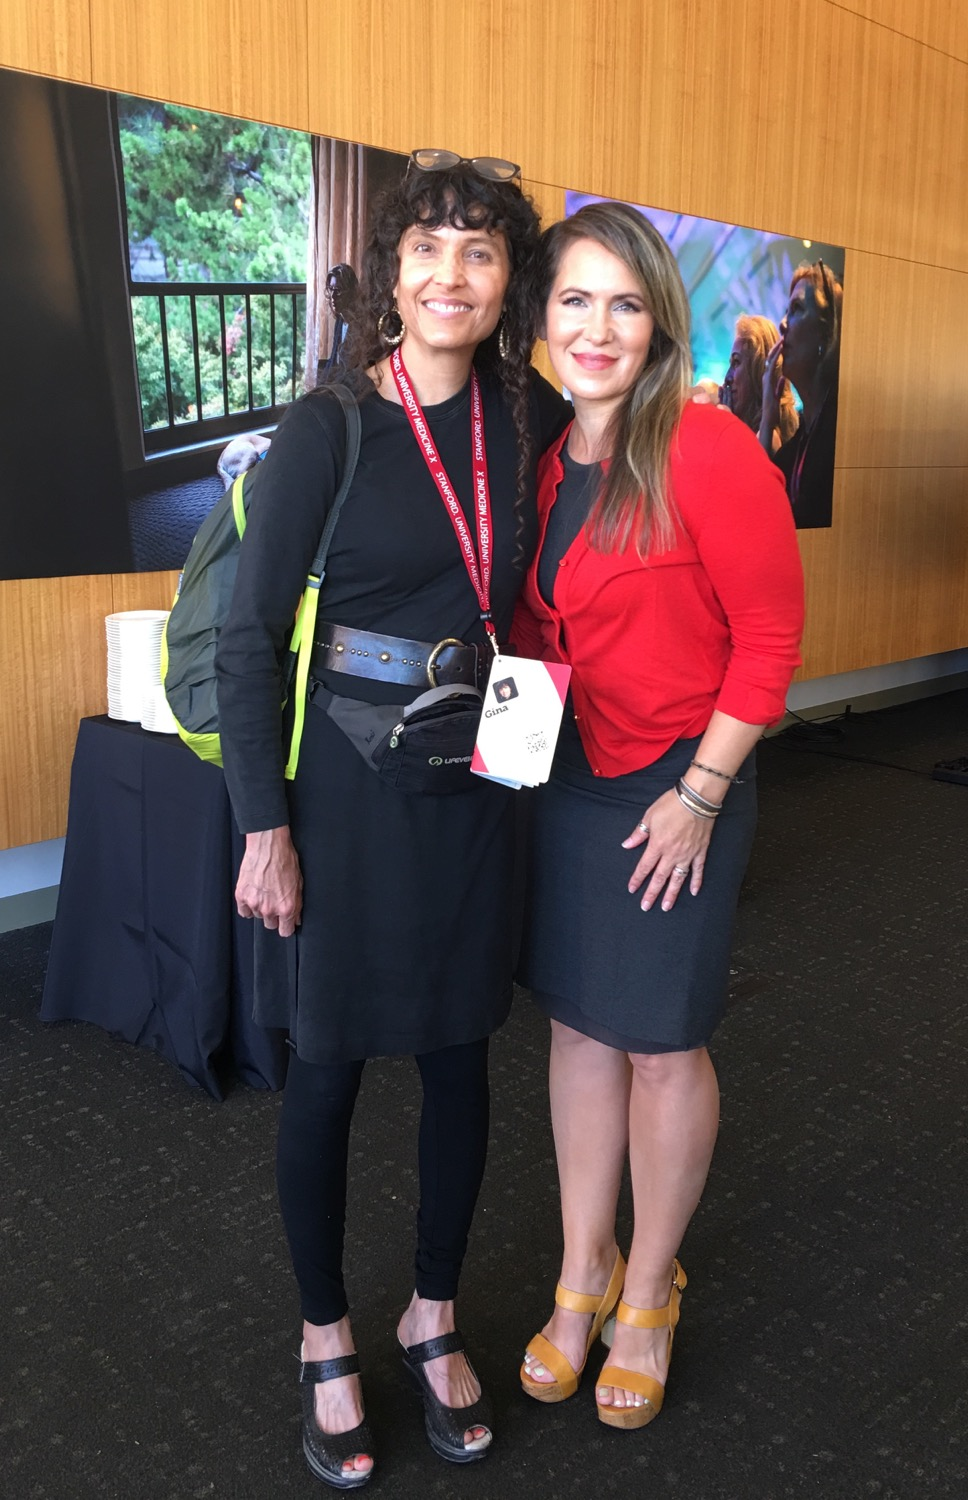 I am in black and with me is Kyra Bobinet, MD, MPH of drkyrabobinet.com